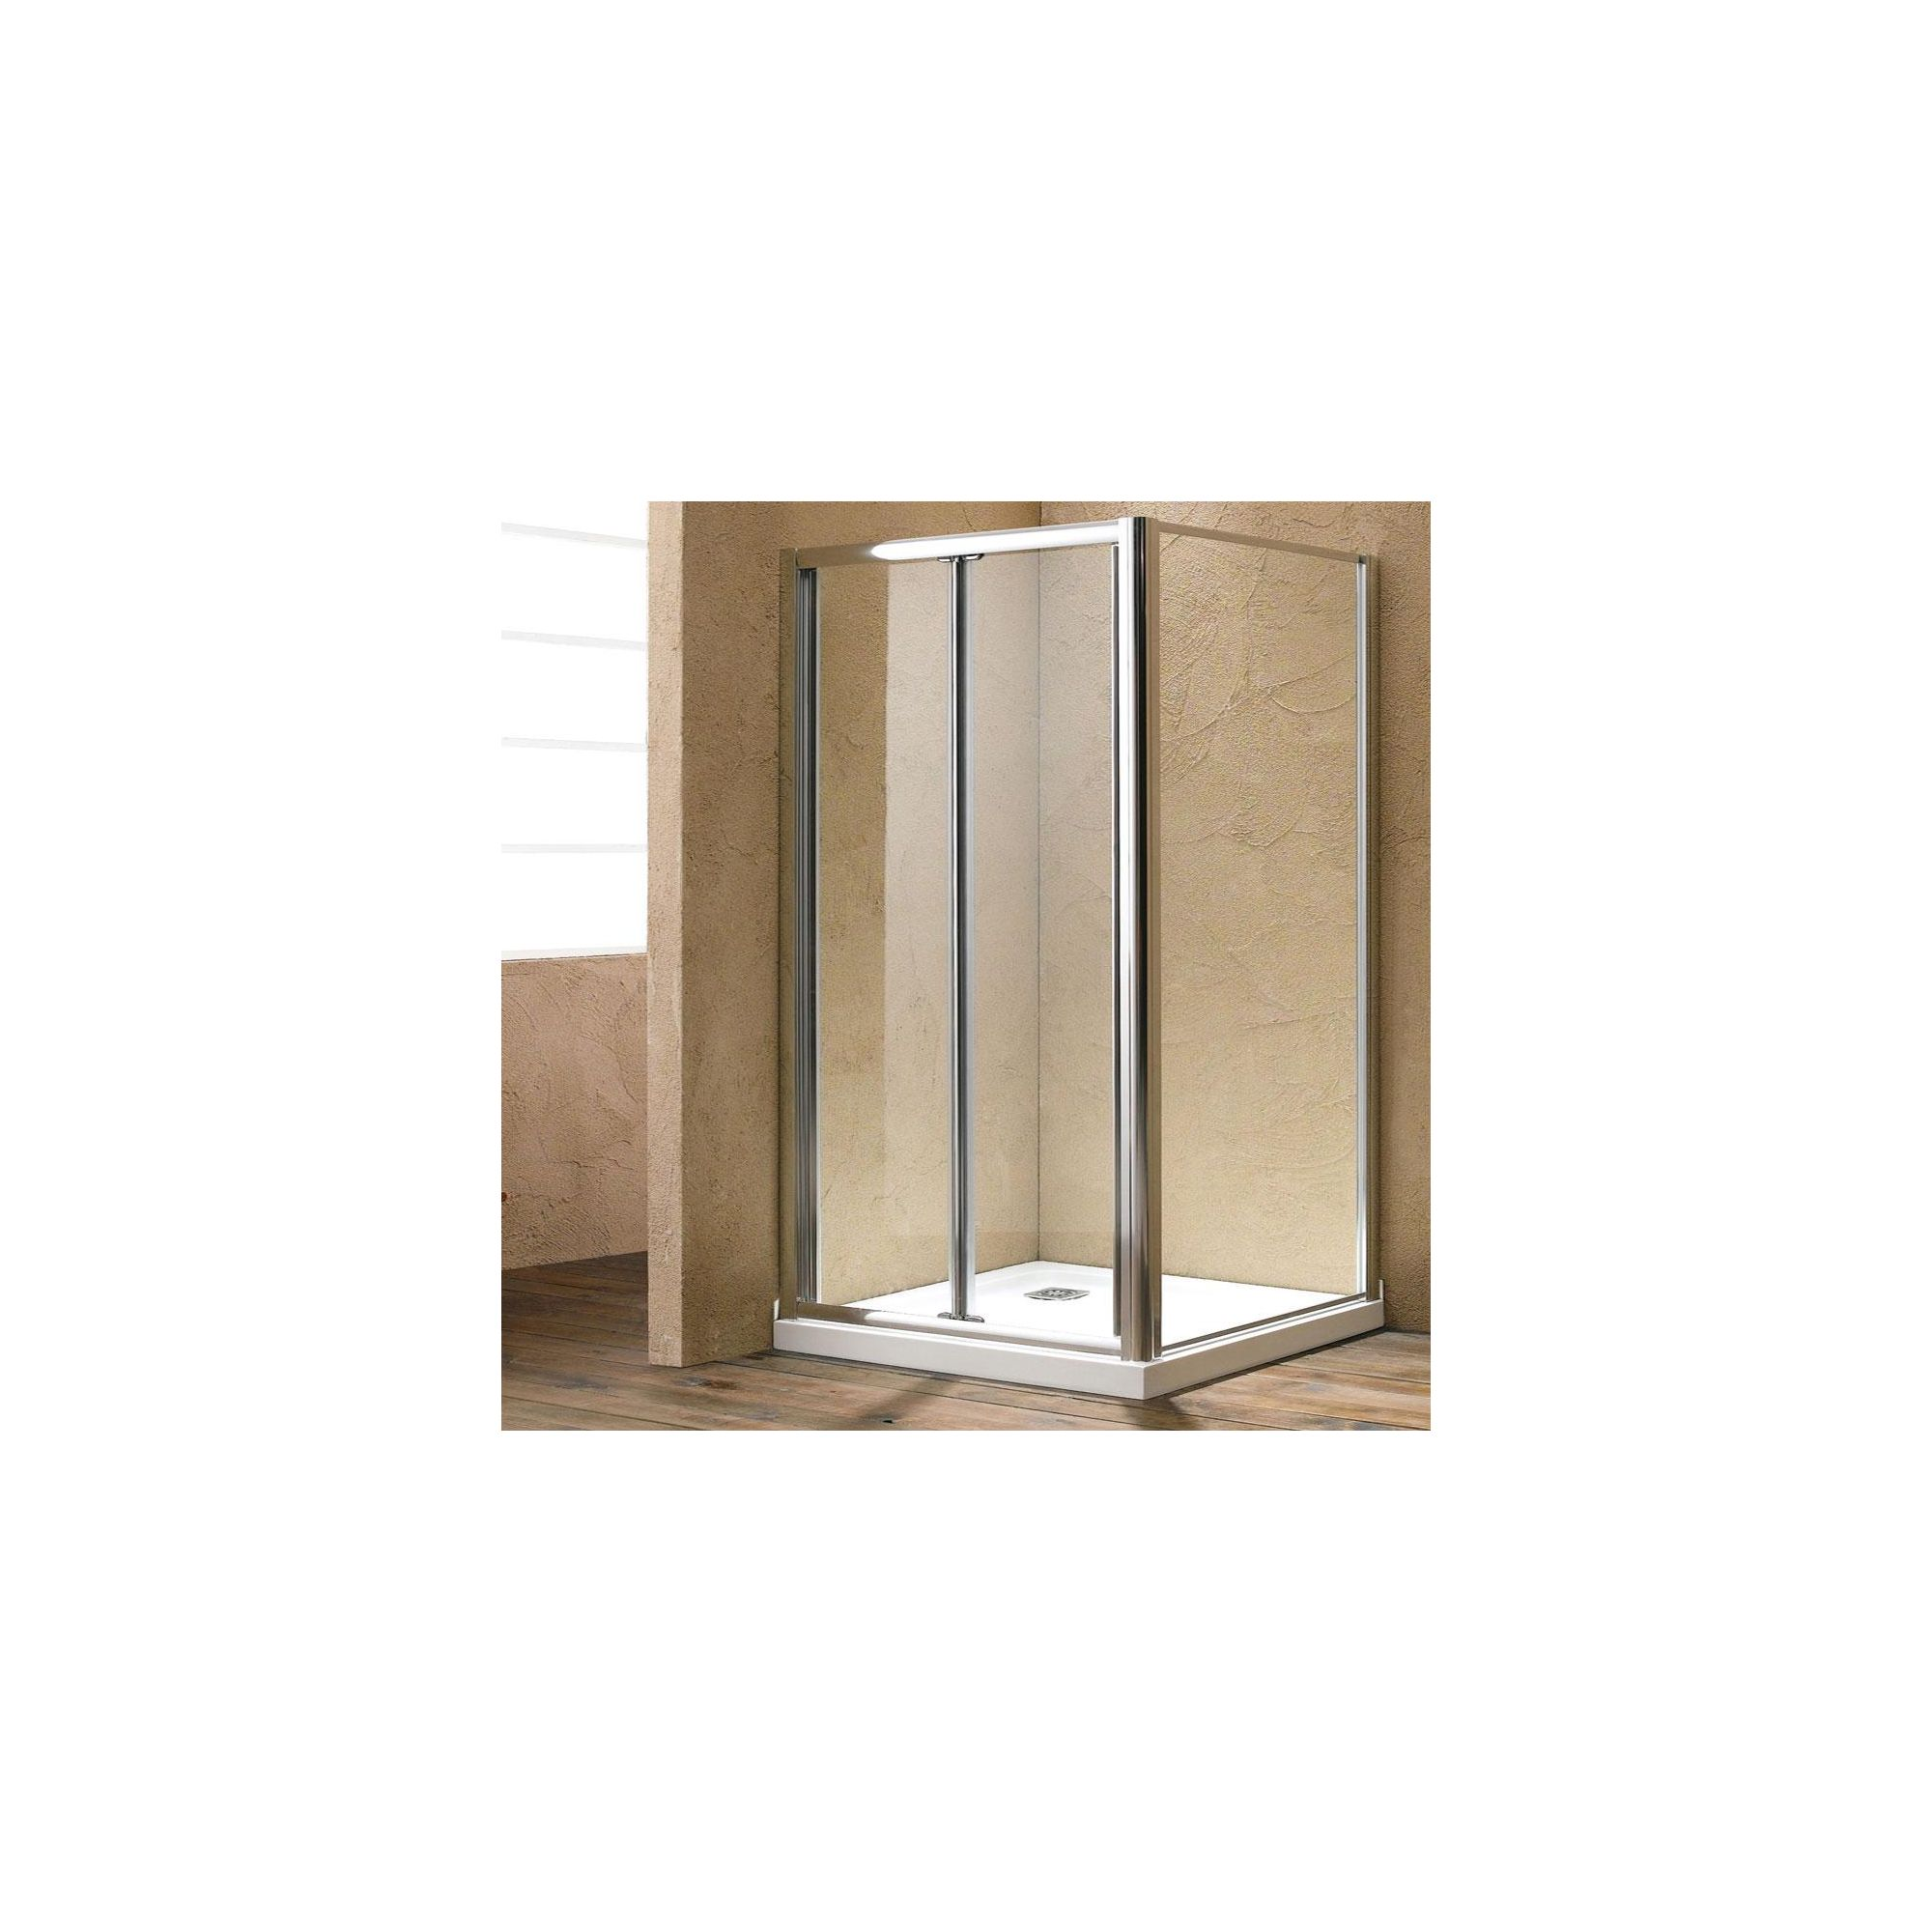 Duchy Style Twin Bi-Fold Door Shower Enclosure, 1100mm x 760mm, 6mm Glass, Low Profile Tray at Tesco Direct